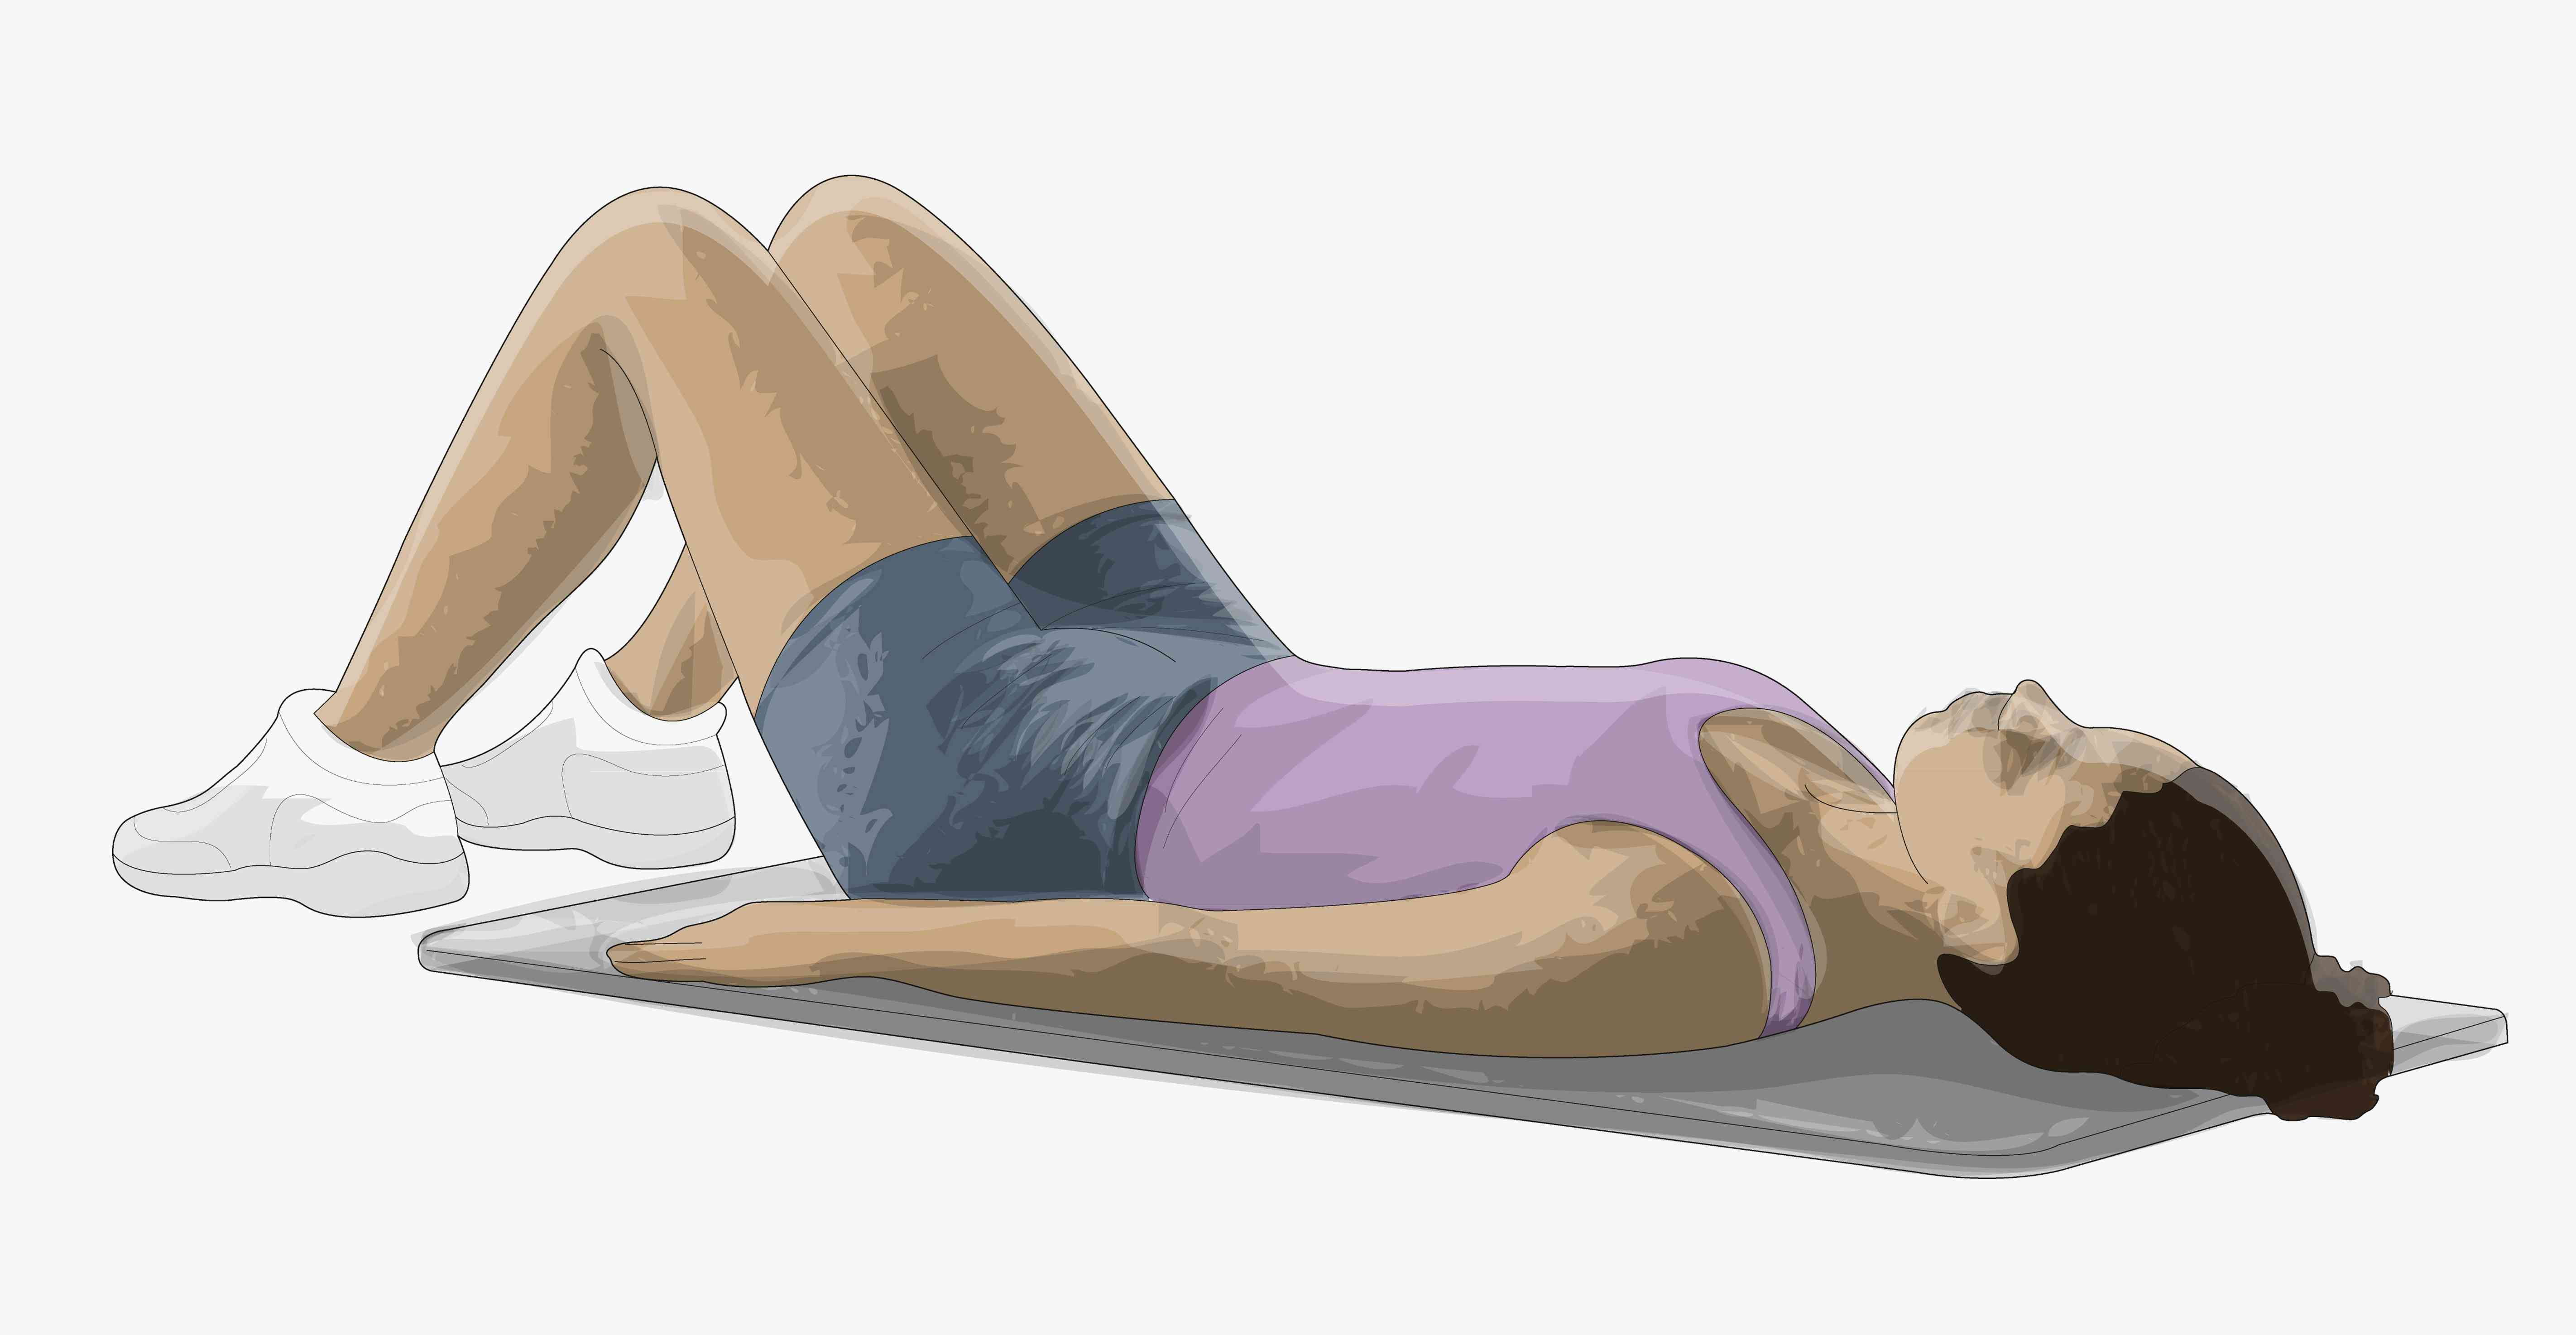 Illustration of a woman performing a starting exercise position laying on her back with knees bent upward